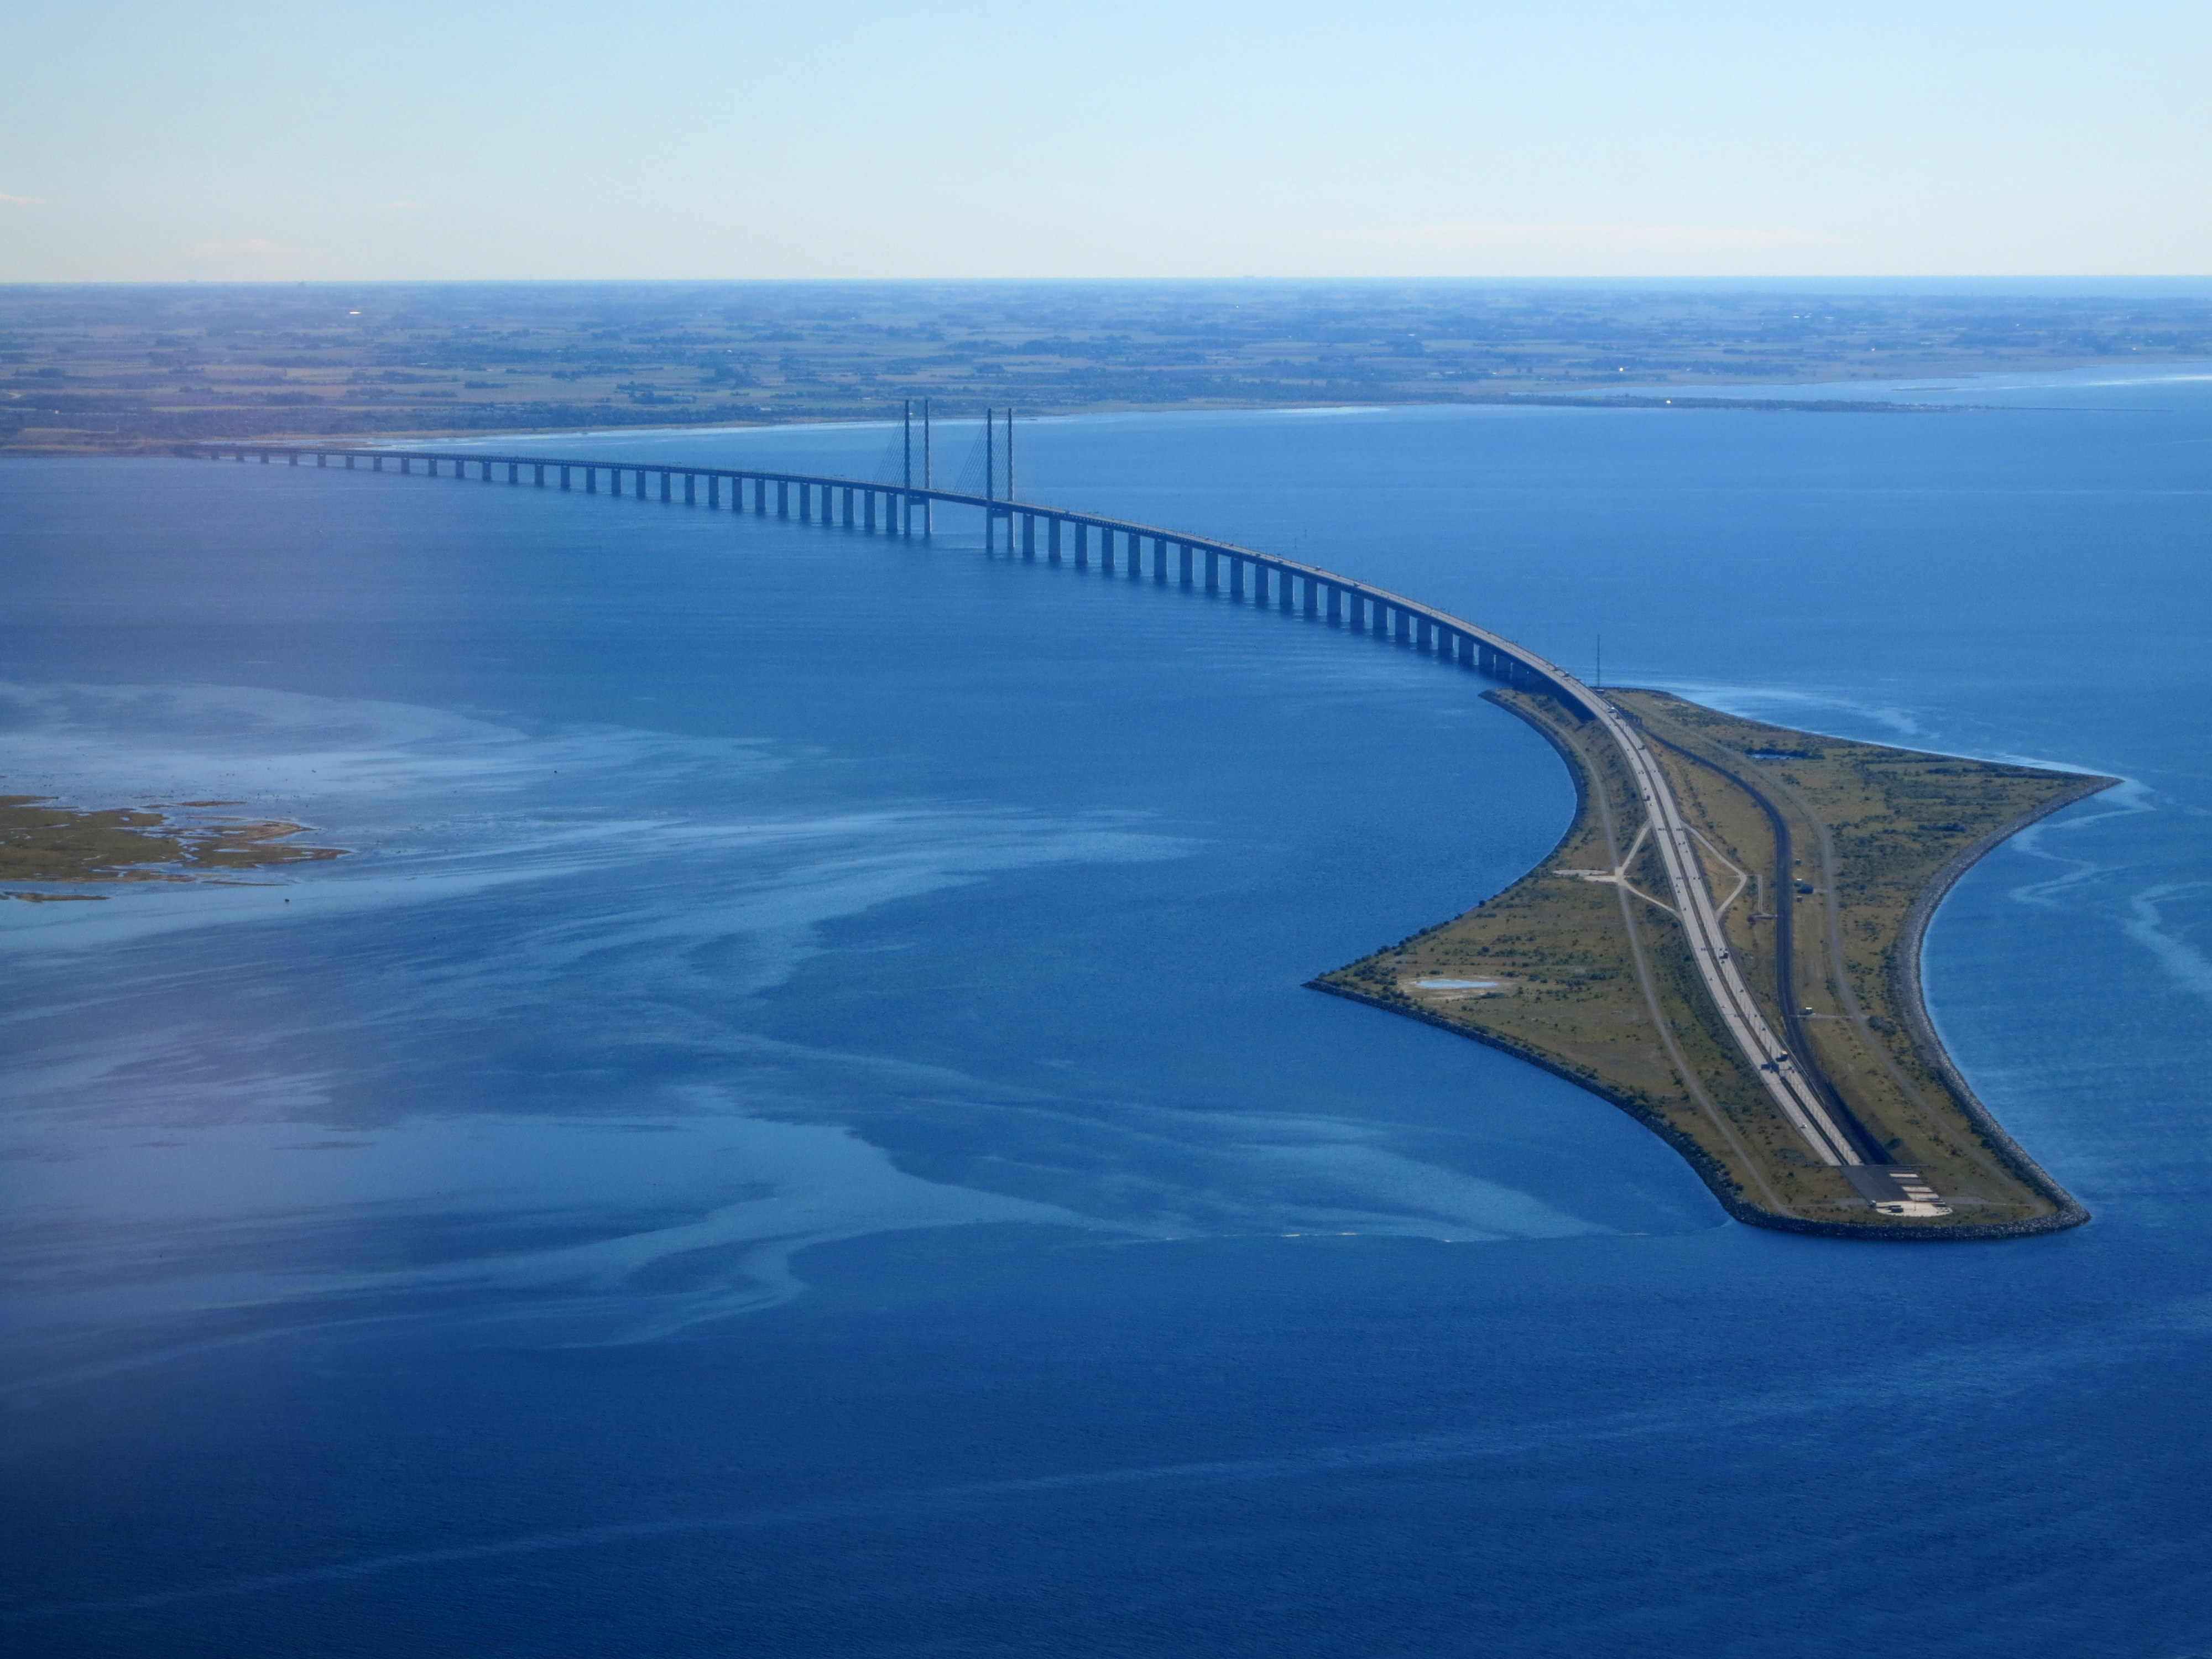 _resund_bridge_from_the_air_in_september_2015.jpg